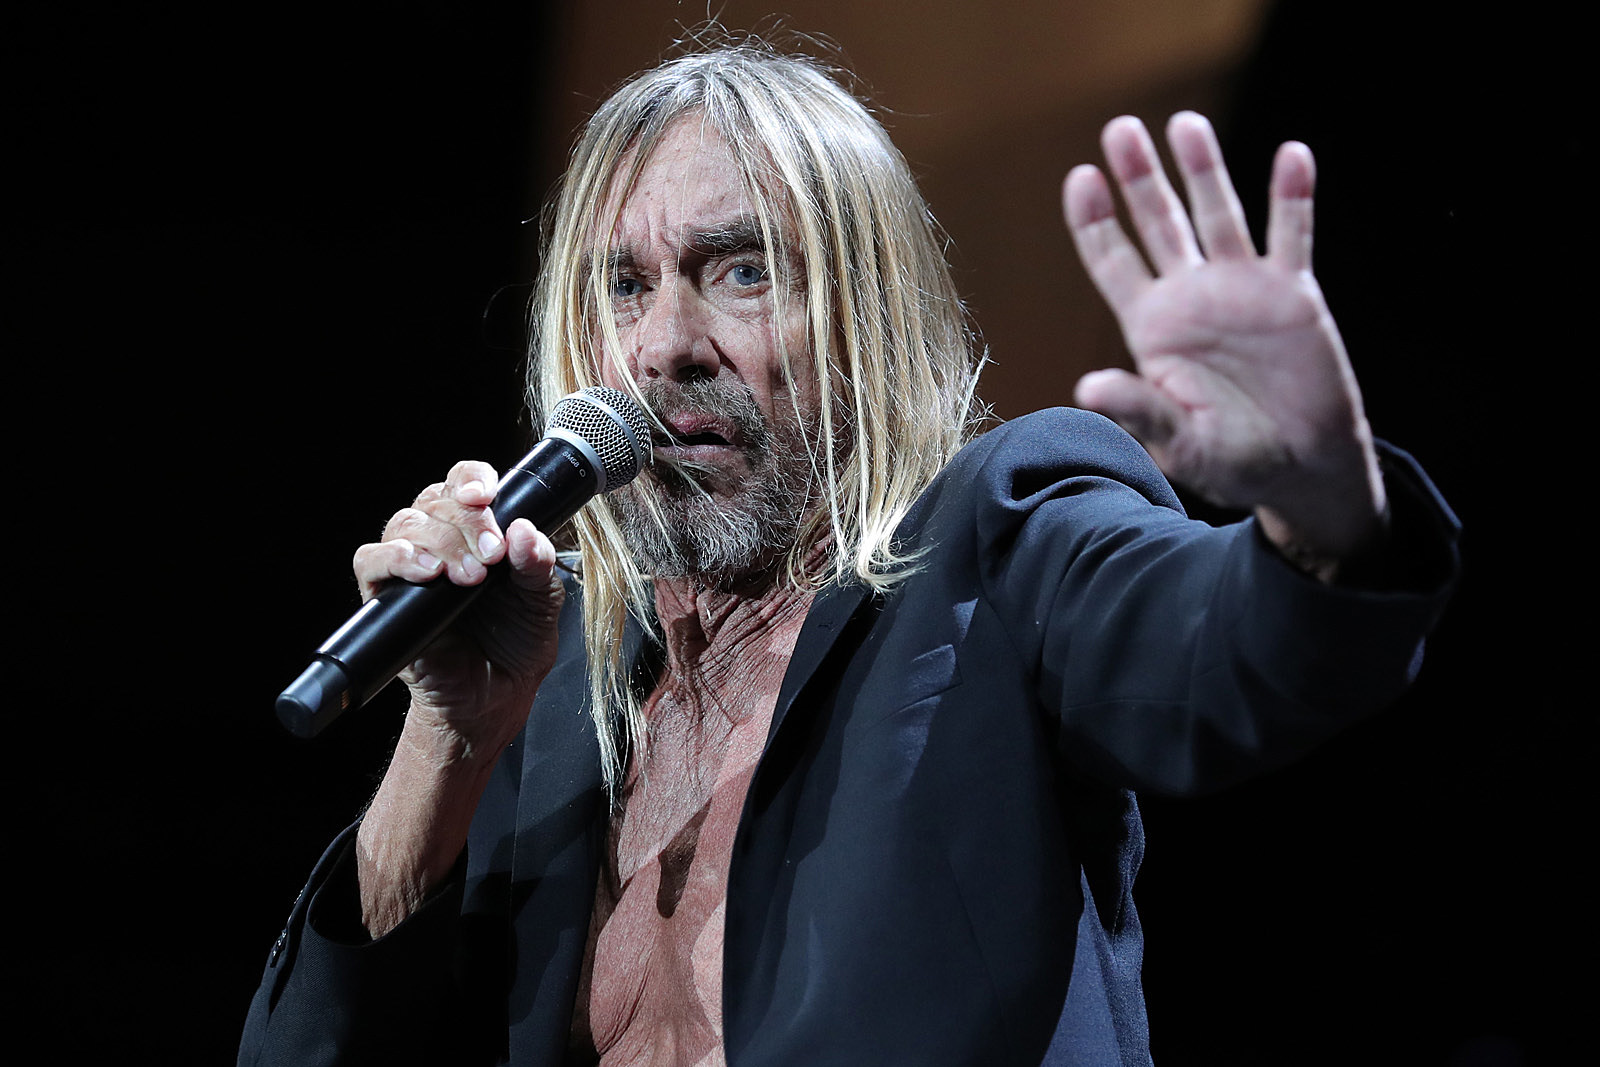 Iggy Pop Hopes to Live to 80 to 'Spite' His Haters